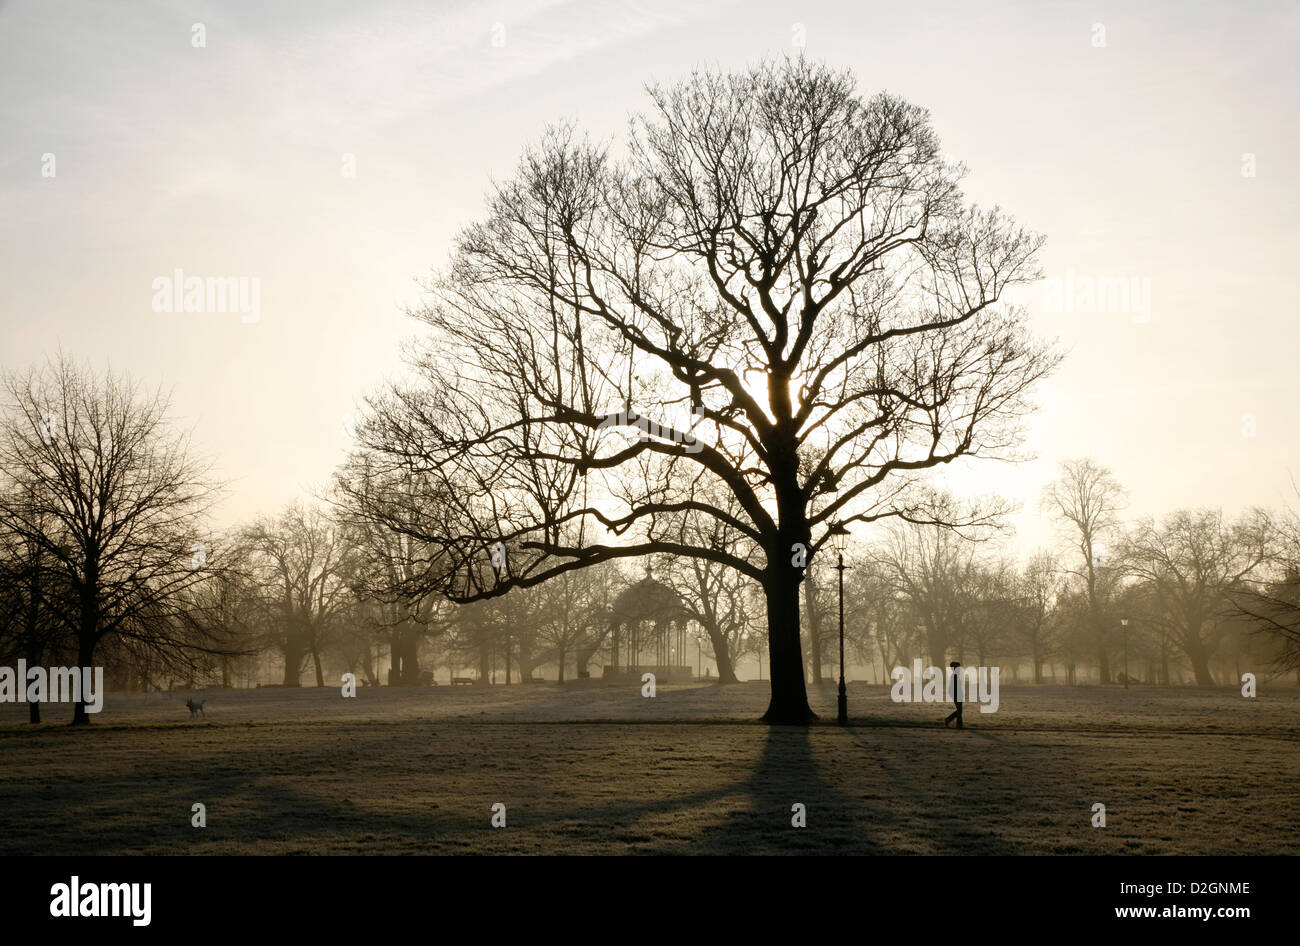 Frosty view of the bandstand on Clapham Common, Clapham, London, UK - Stock Image